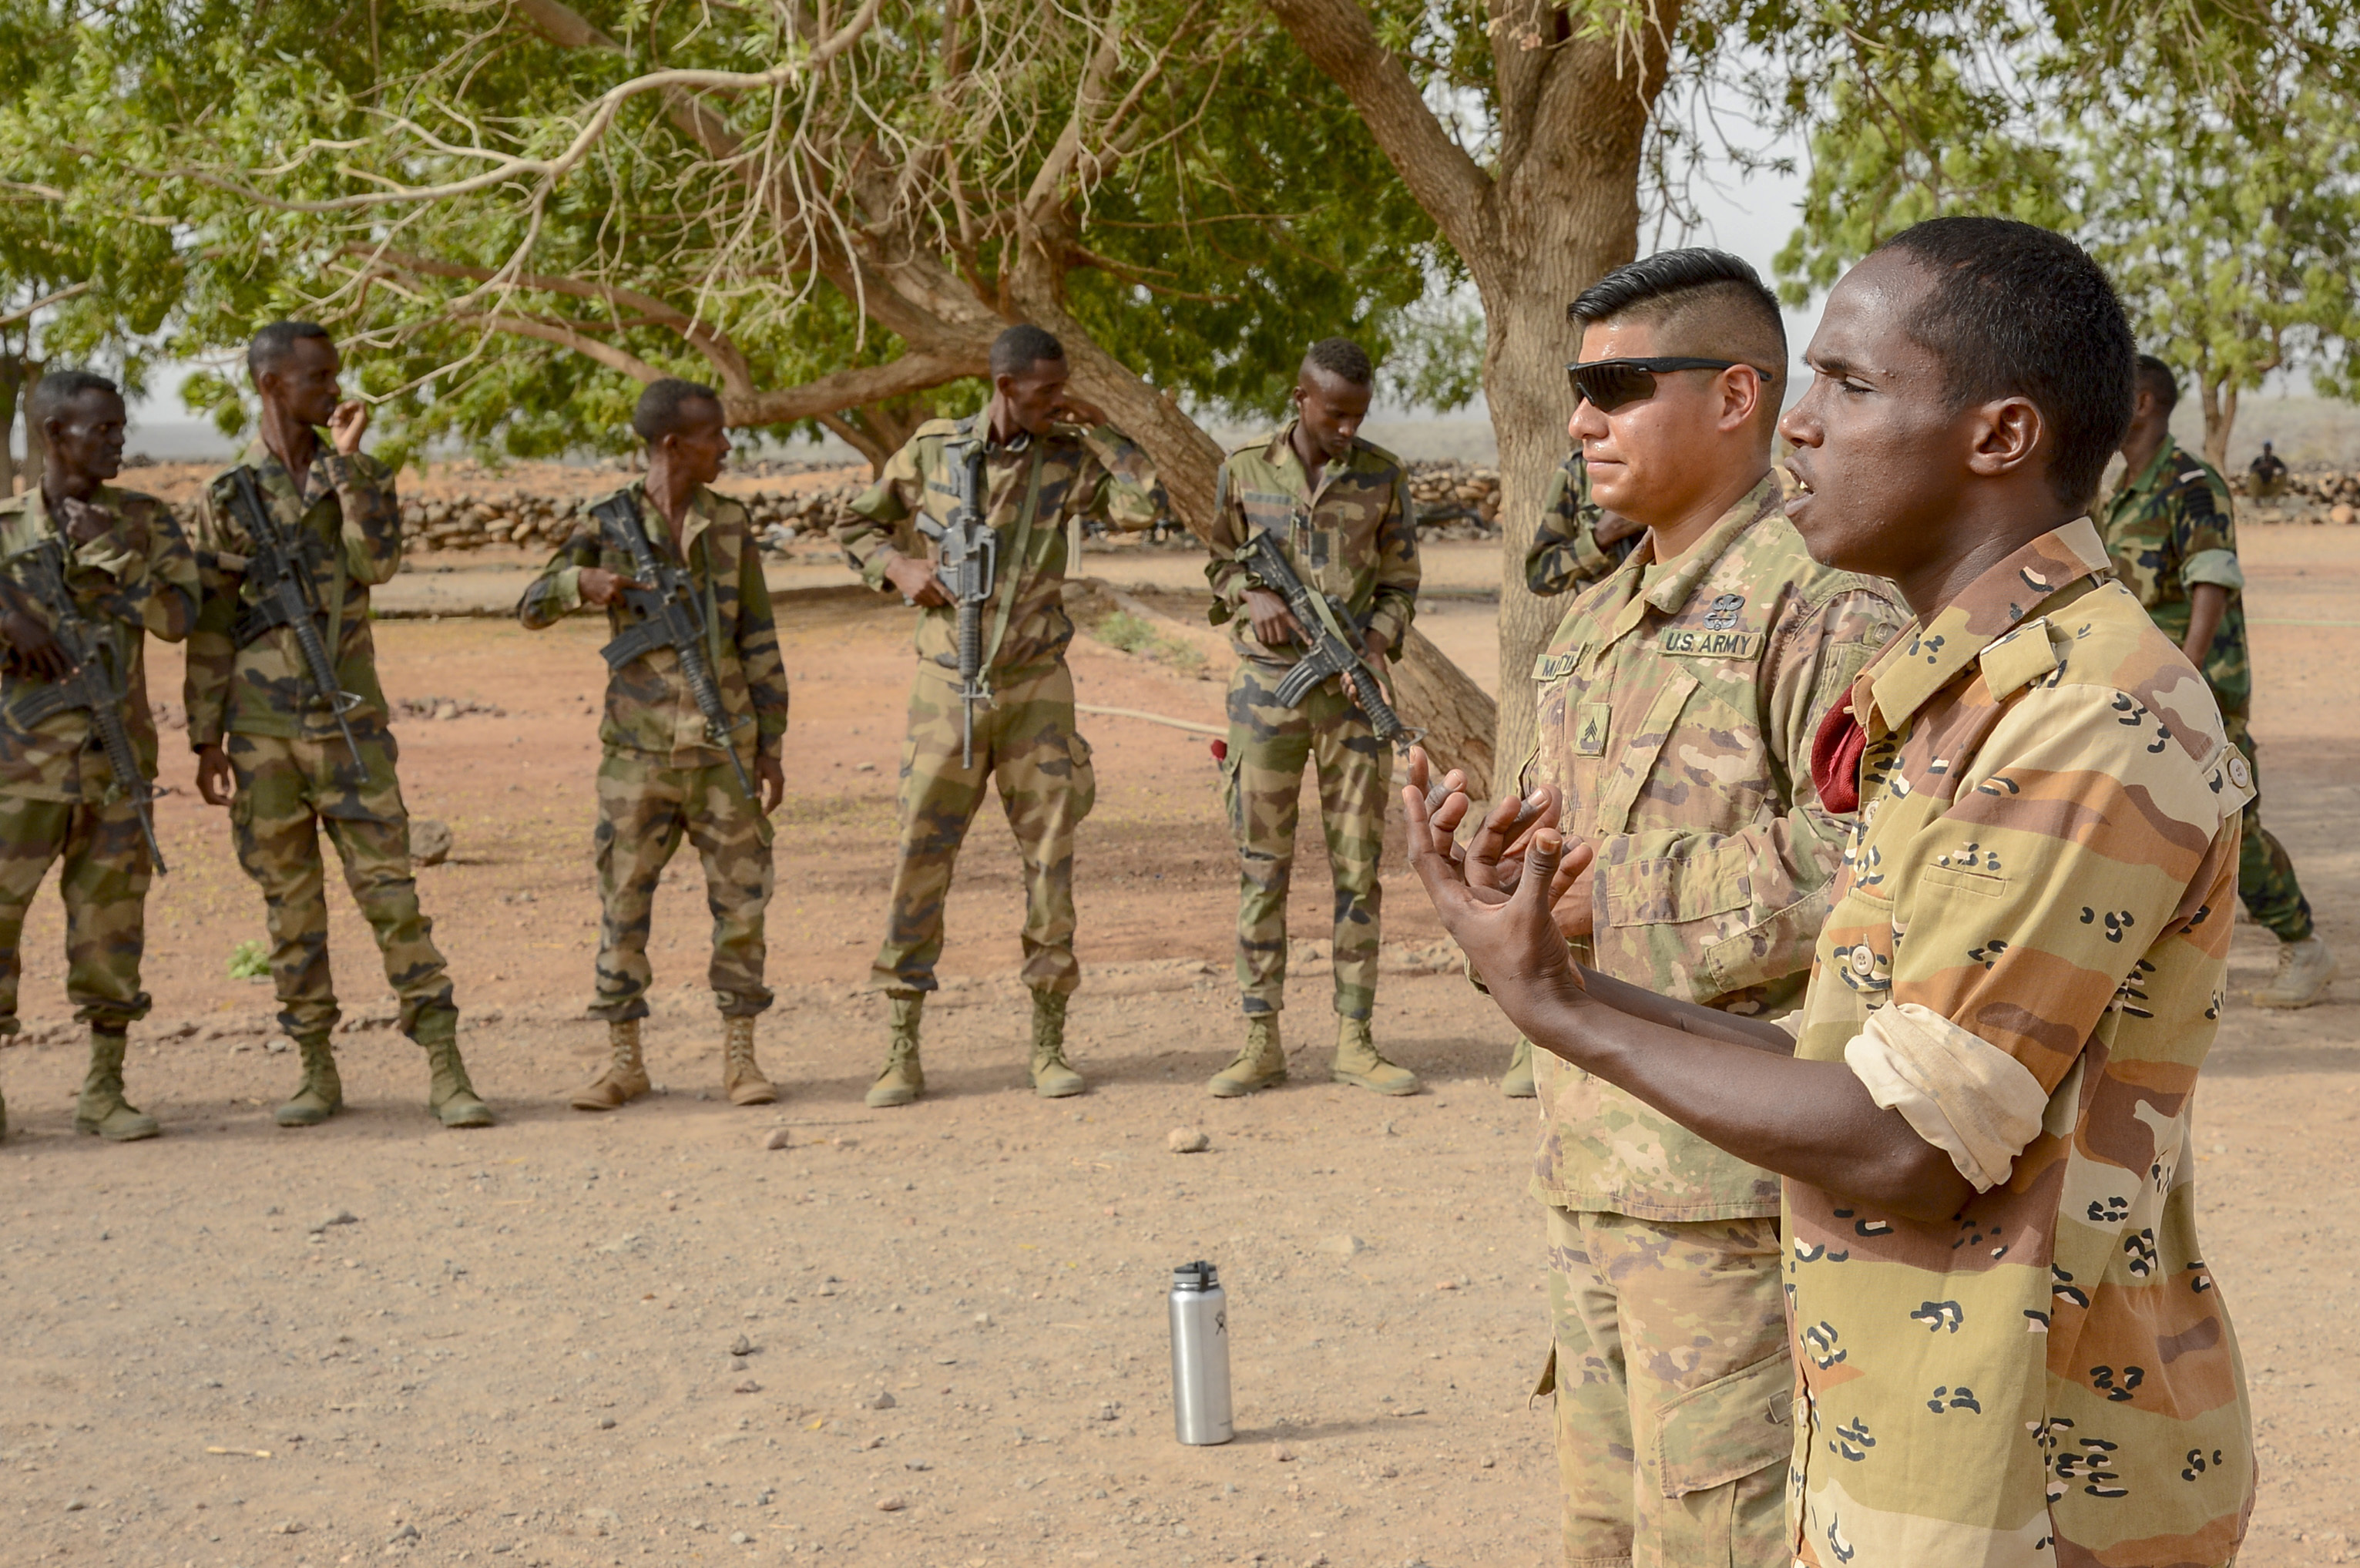 A non-commissioned officer with the Djiboutian Army's Rapid Intervention Battalion (RIB) and U.S. Army Sergeant Daniel Martinez, Bravo Co., 1st Battalion, 141st Infantry Regiment, Texas National Guard, instruct new recruits at a training site outside Djibouti City, July 3, 2018. The RIB is a U.S. Army trained unit that was formed to respond to crises and promote regional security and stability in East Africa. (U.S. Navy Photo by Mass Communication Specialist 2nd Class Timothy M. Ahearn)